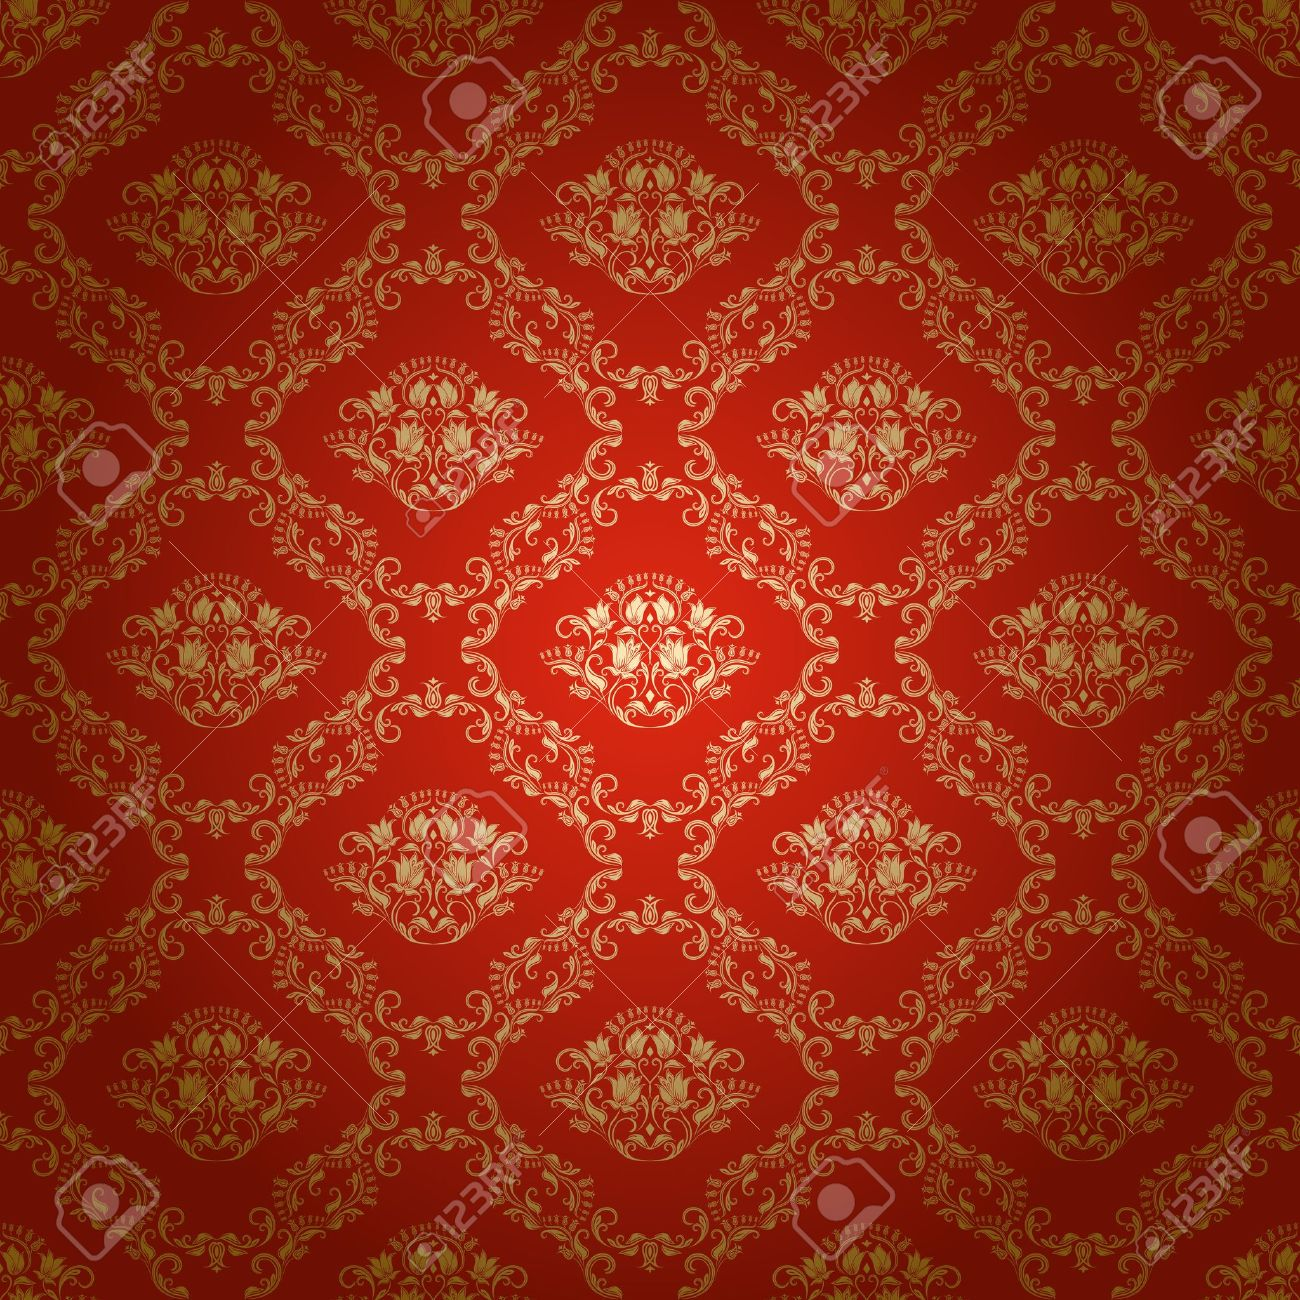 Damask seamless floral pattern  Royal wallpaper  Flowers on a bright background Stock Vector - 16529660